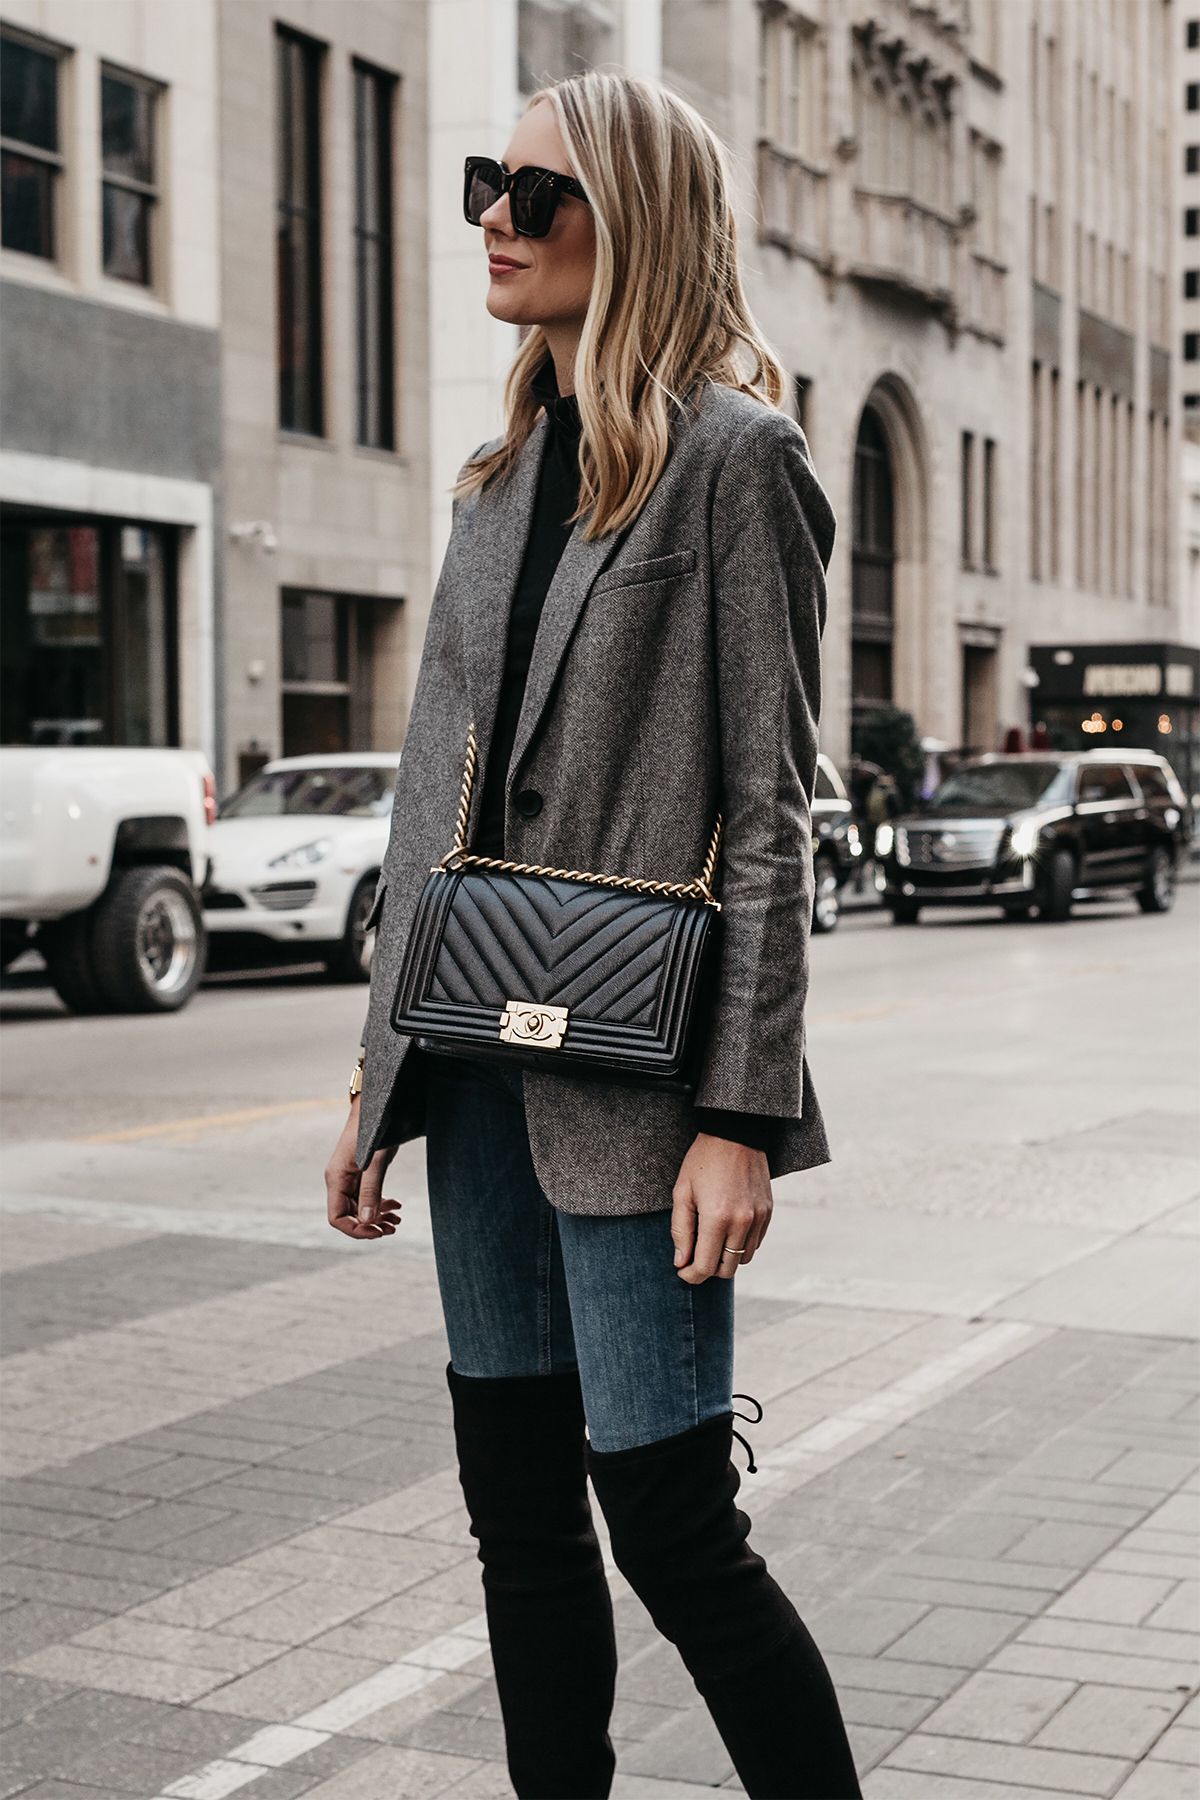 Blonde Woman Wearing Everlane Oversized Grey Blazer Denim Jeans Over the Knee Black Boots Chanel Black Boy Bag Fashion Jackson Dallas Blogger Fashion Blogger Street Style